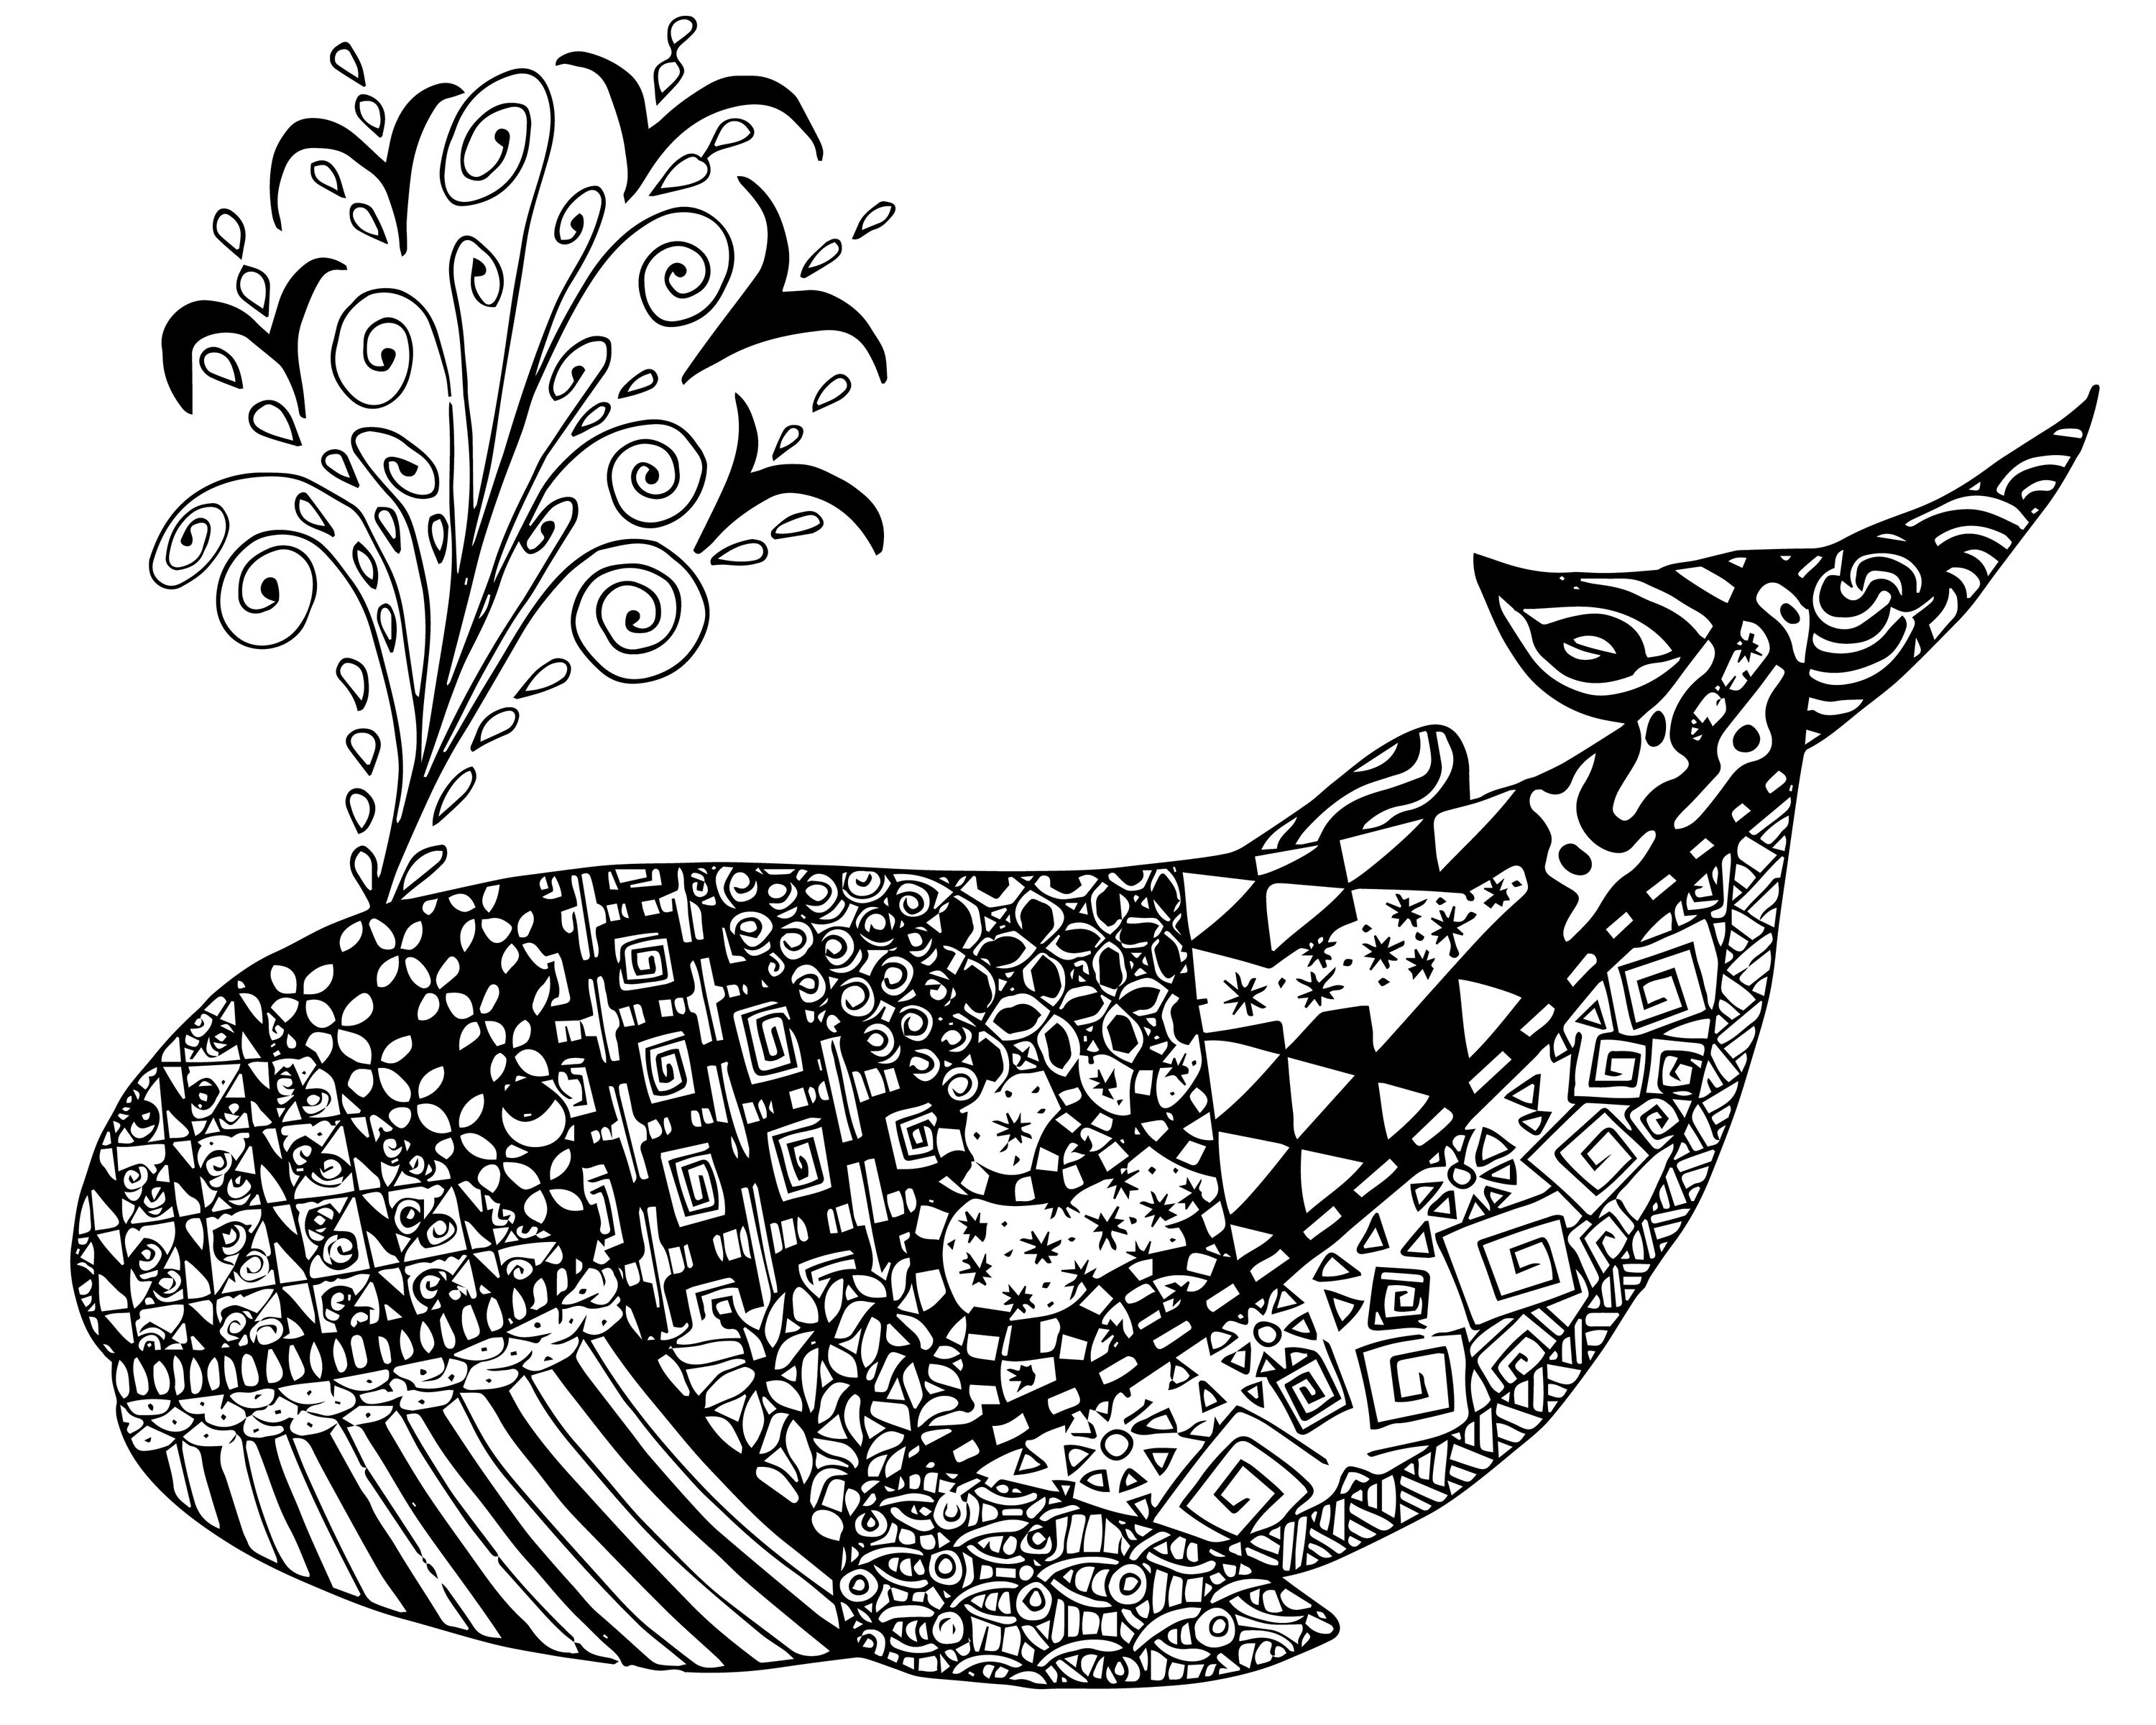 Coloring pages for adults zentangle - Free Whale Zen Tangles Adult Coloring Page